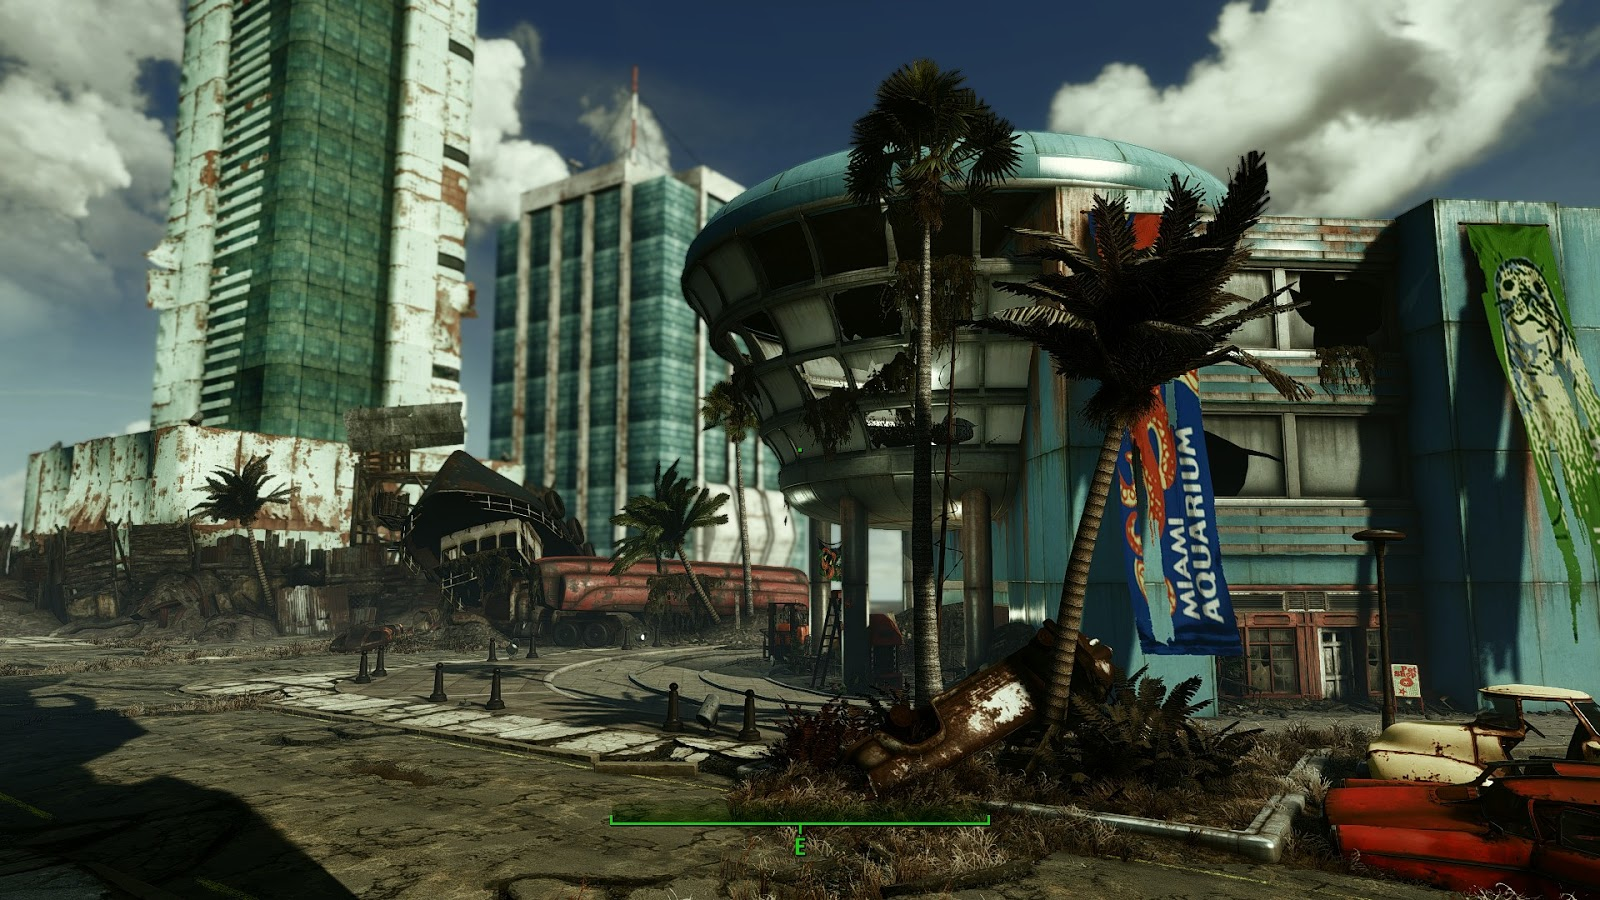 Fallout 4 Expansion Mod Fallout Miami Early Version Released for